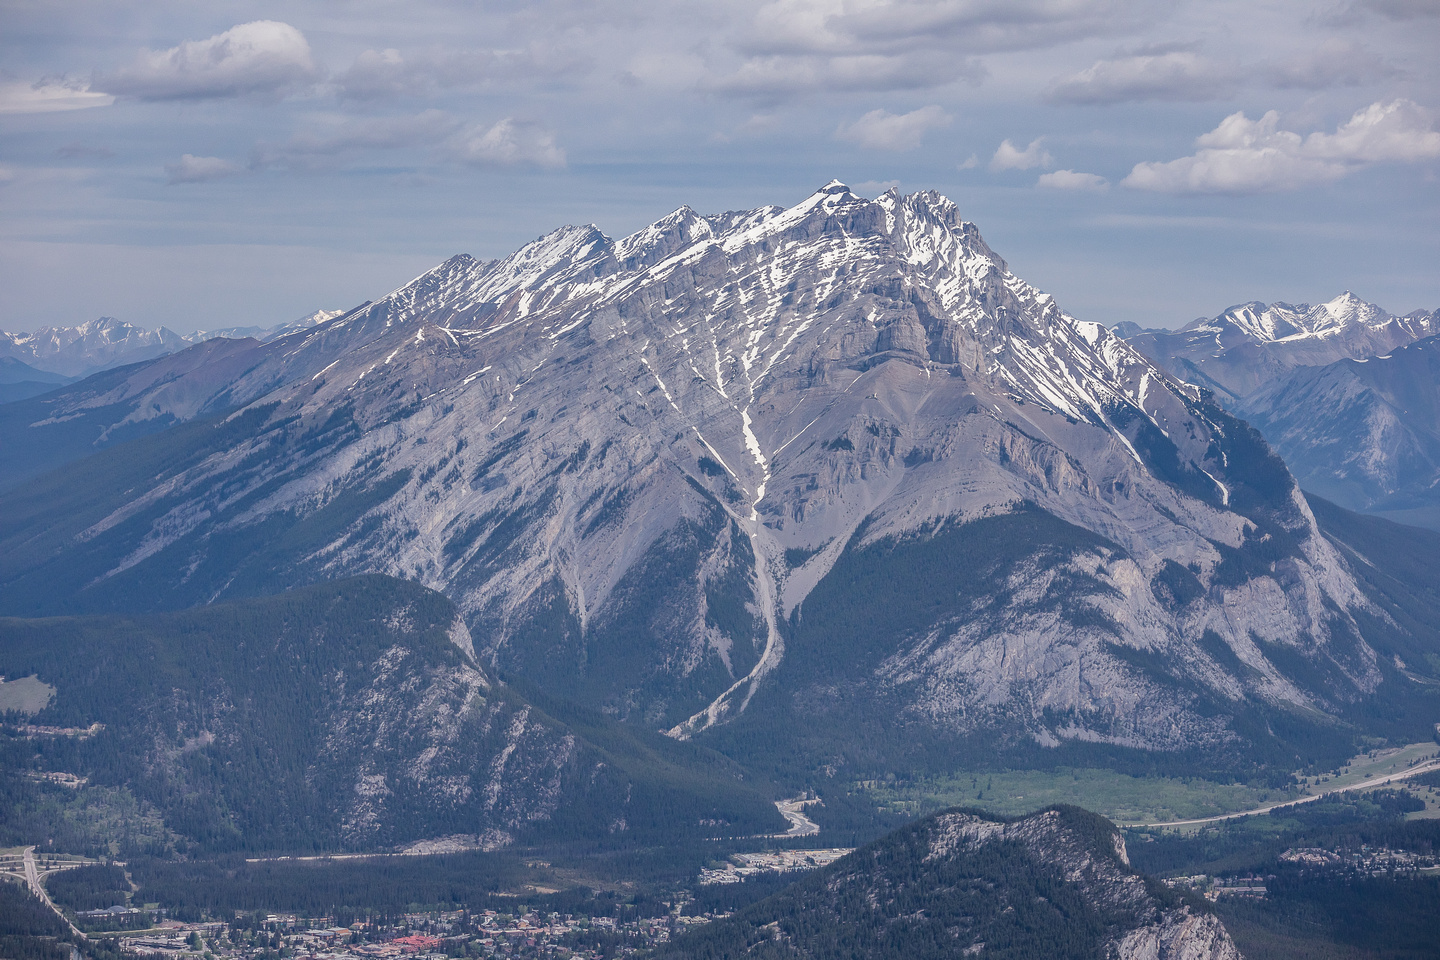 Cascade Mountain over Tunnel Mountain and the town of Banff.